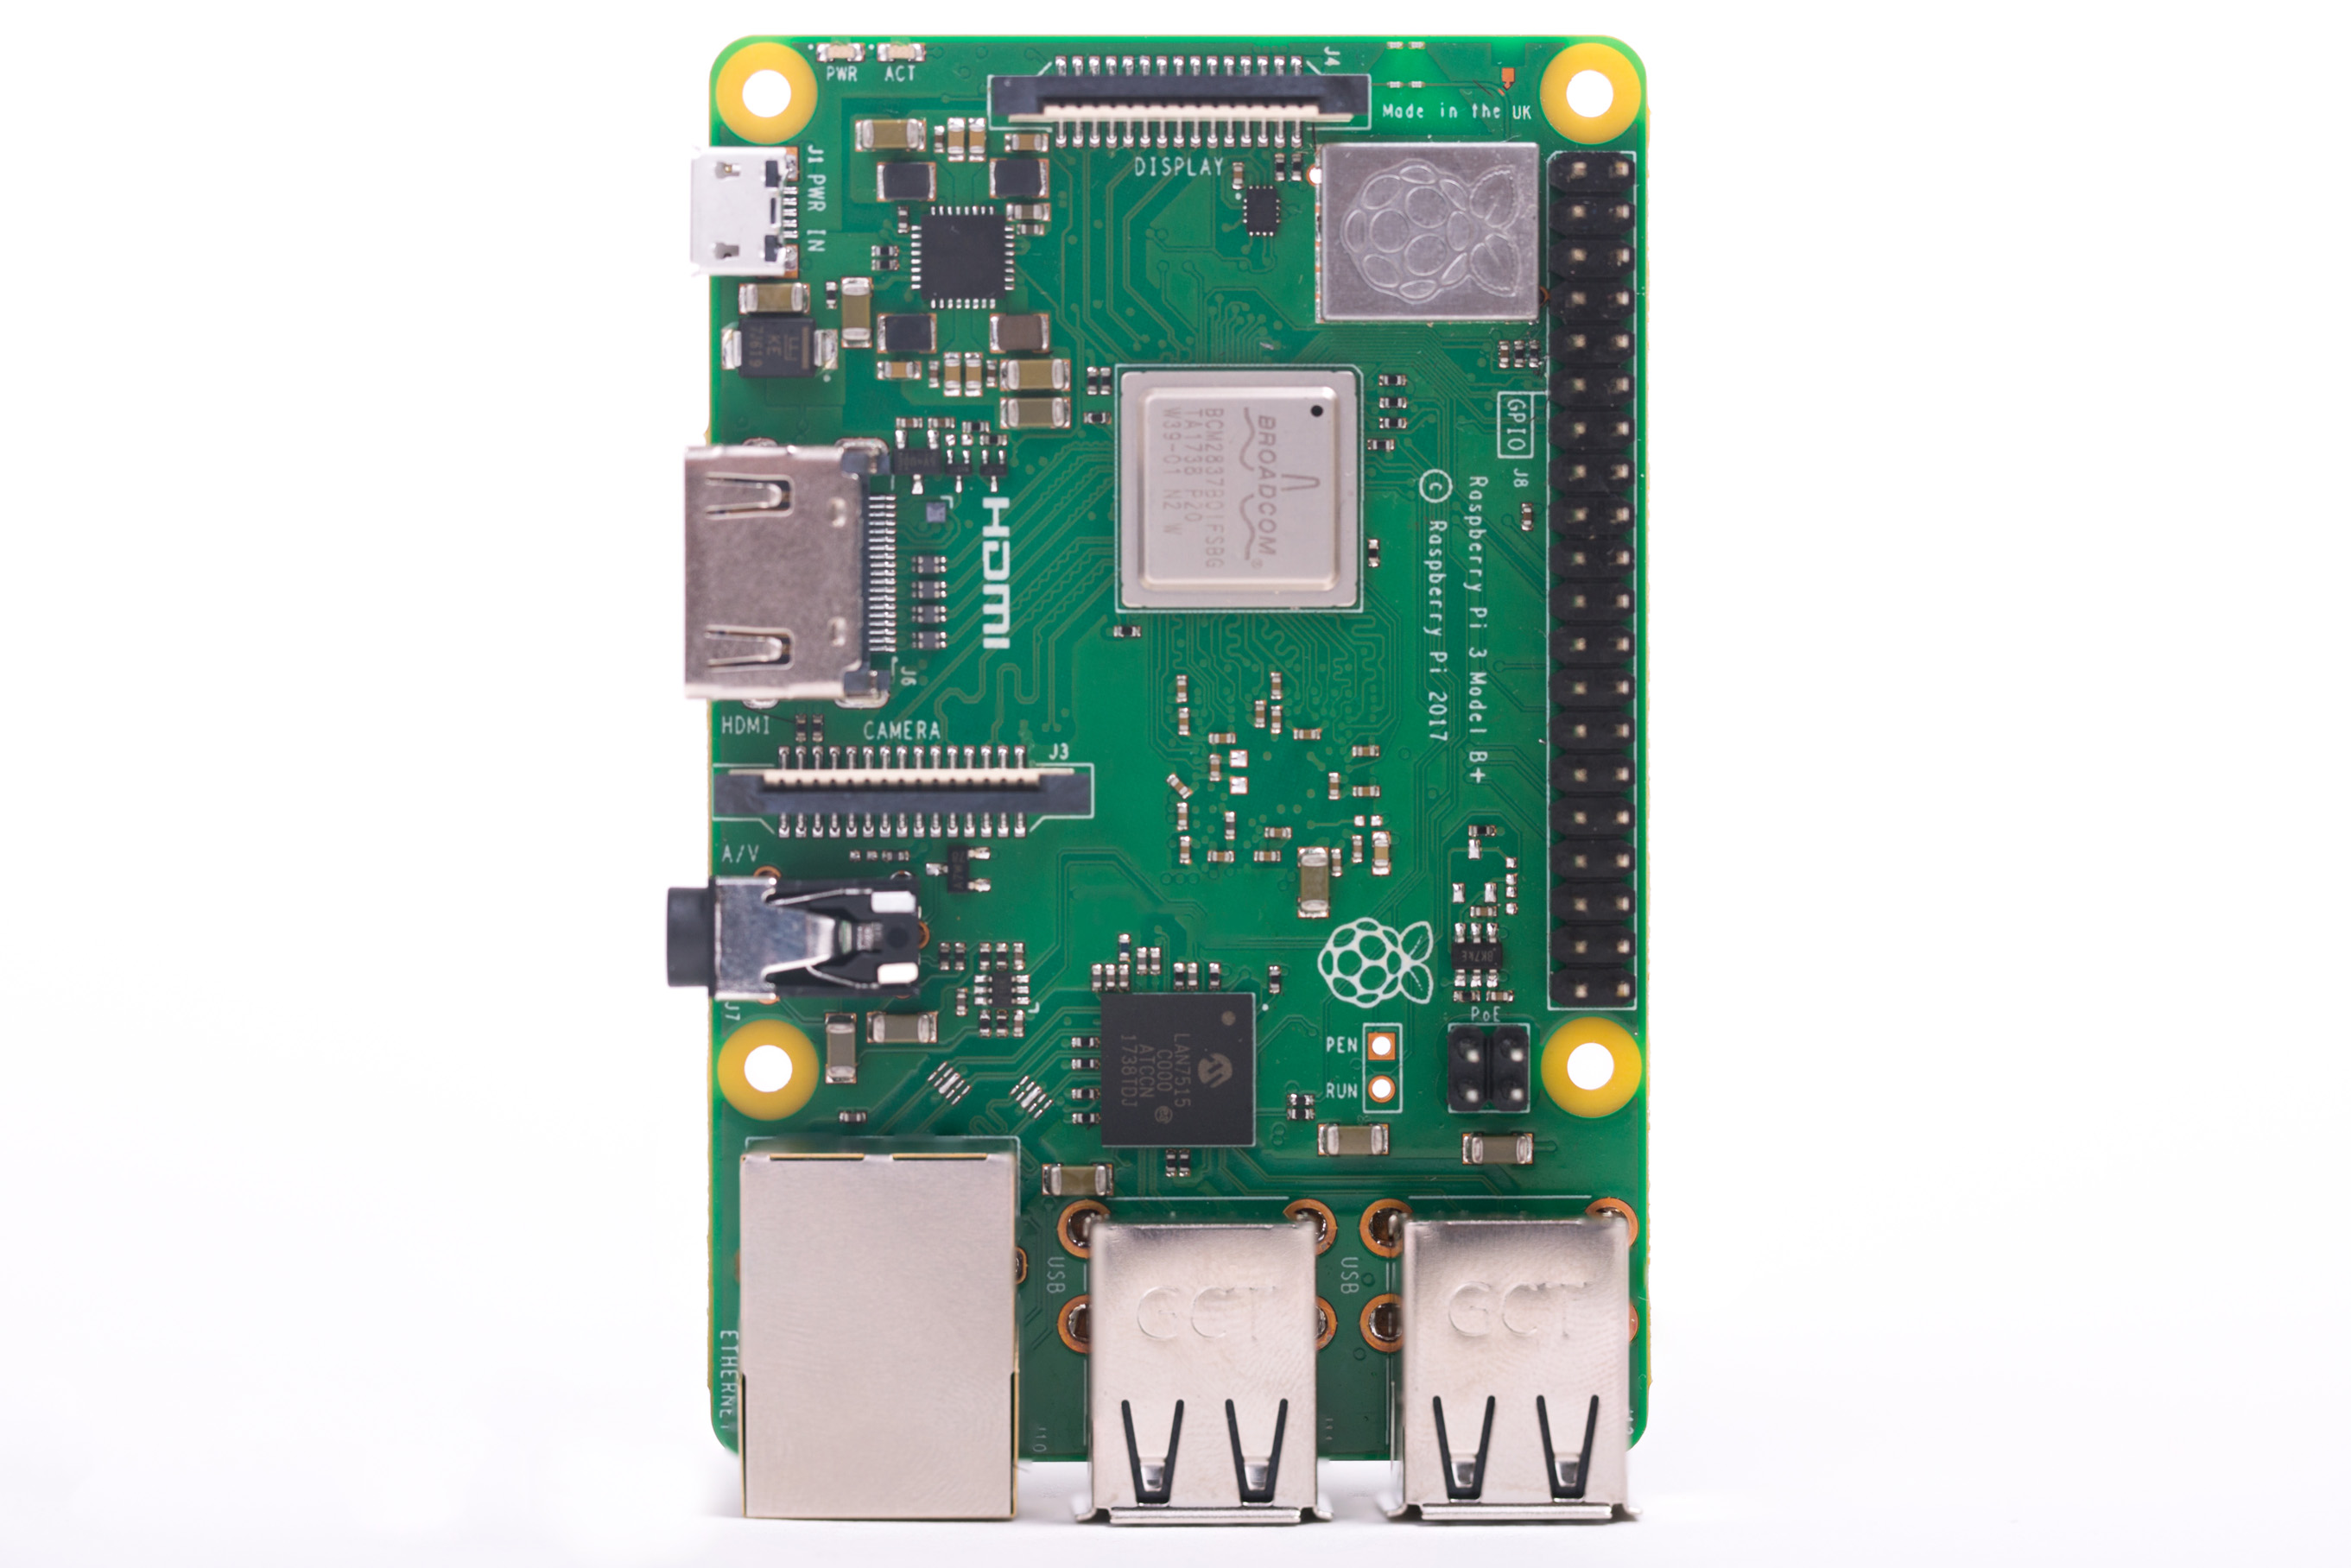 Get the Best Raspberry Pi 3 Performance with the Model B+